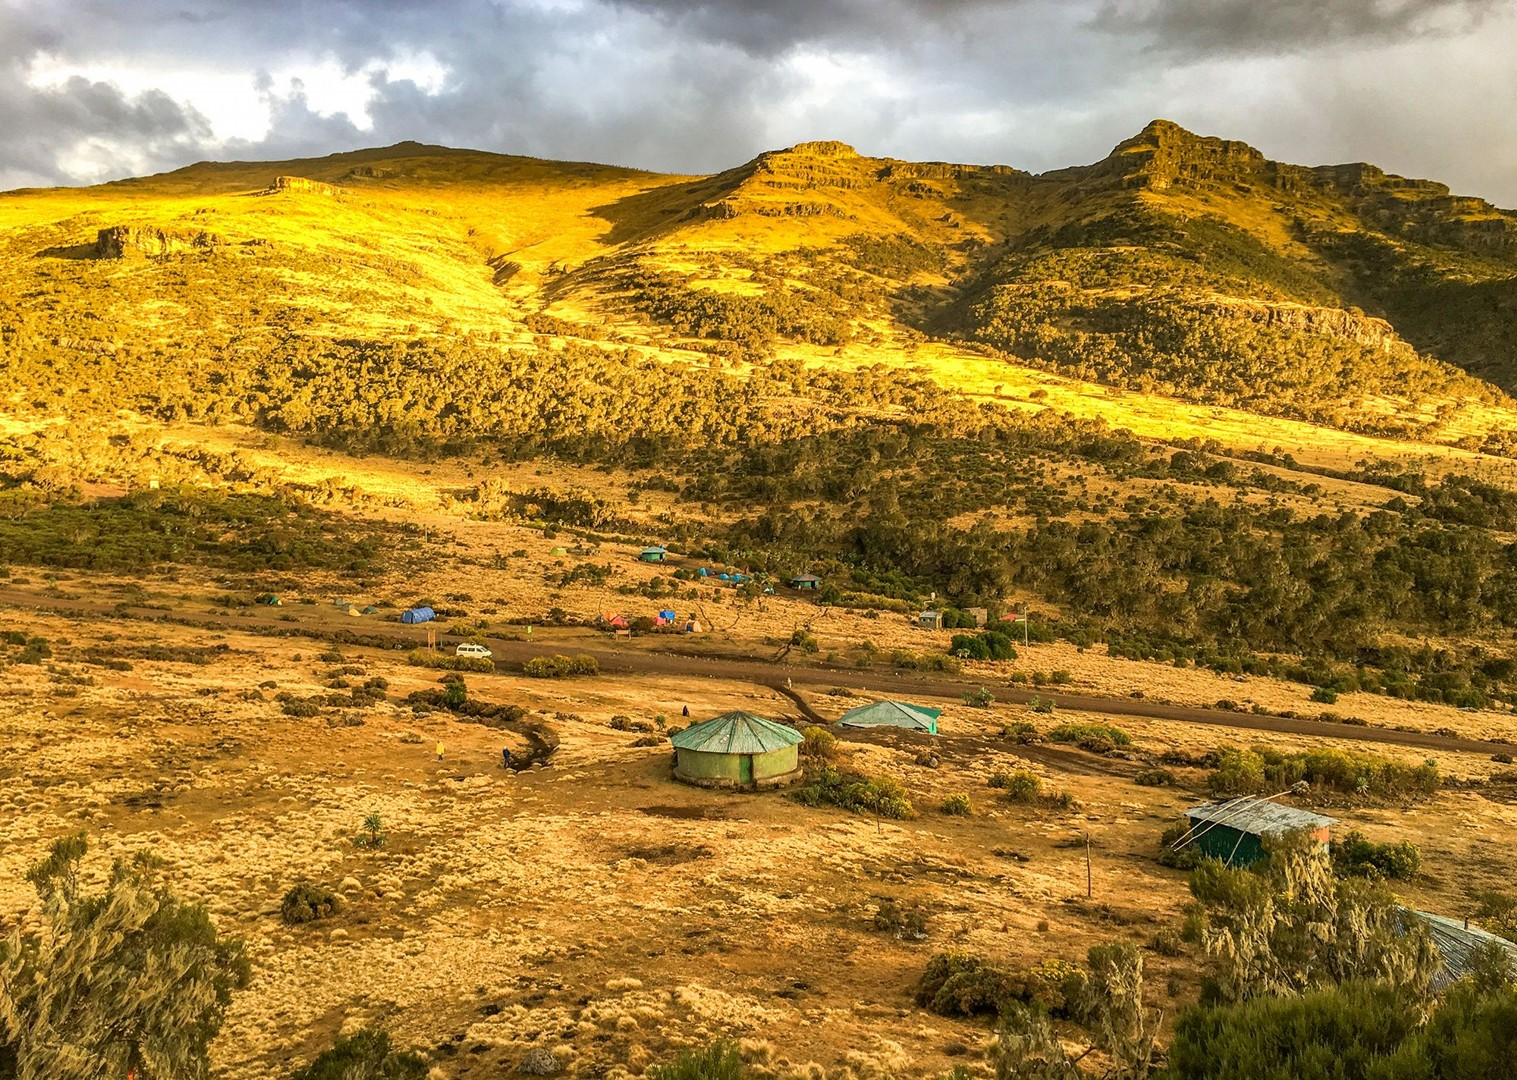 mountain-range-scenery-ethiopia-cycling-holiday.jpg - NEW! Ethiopia - Enchanting Ethiopia - Cycling Adventures